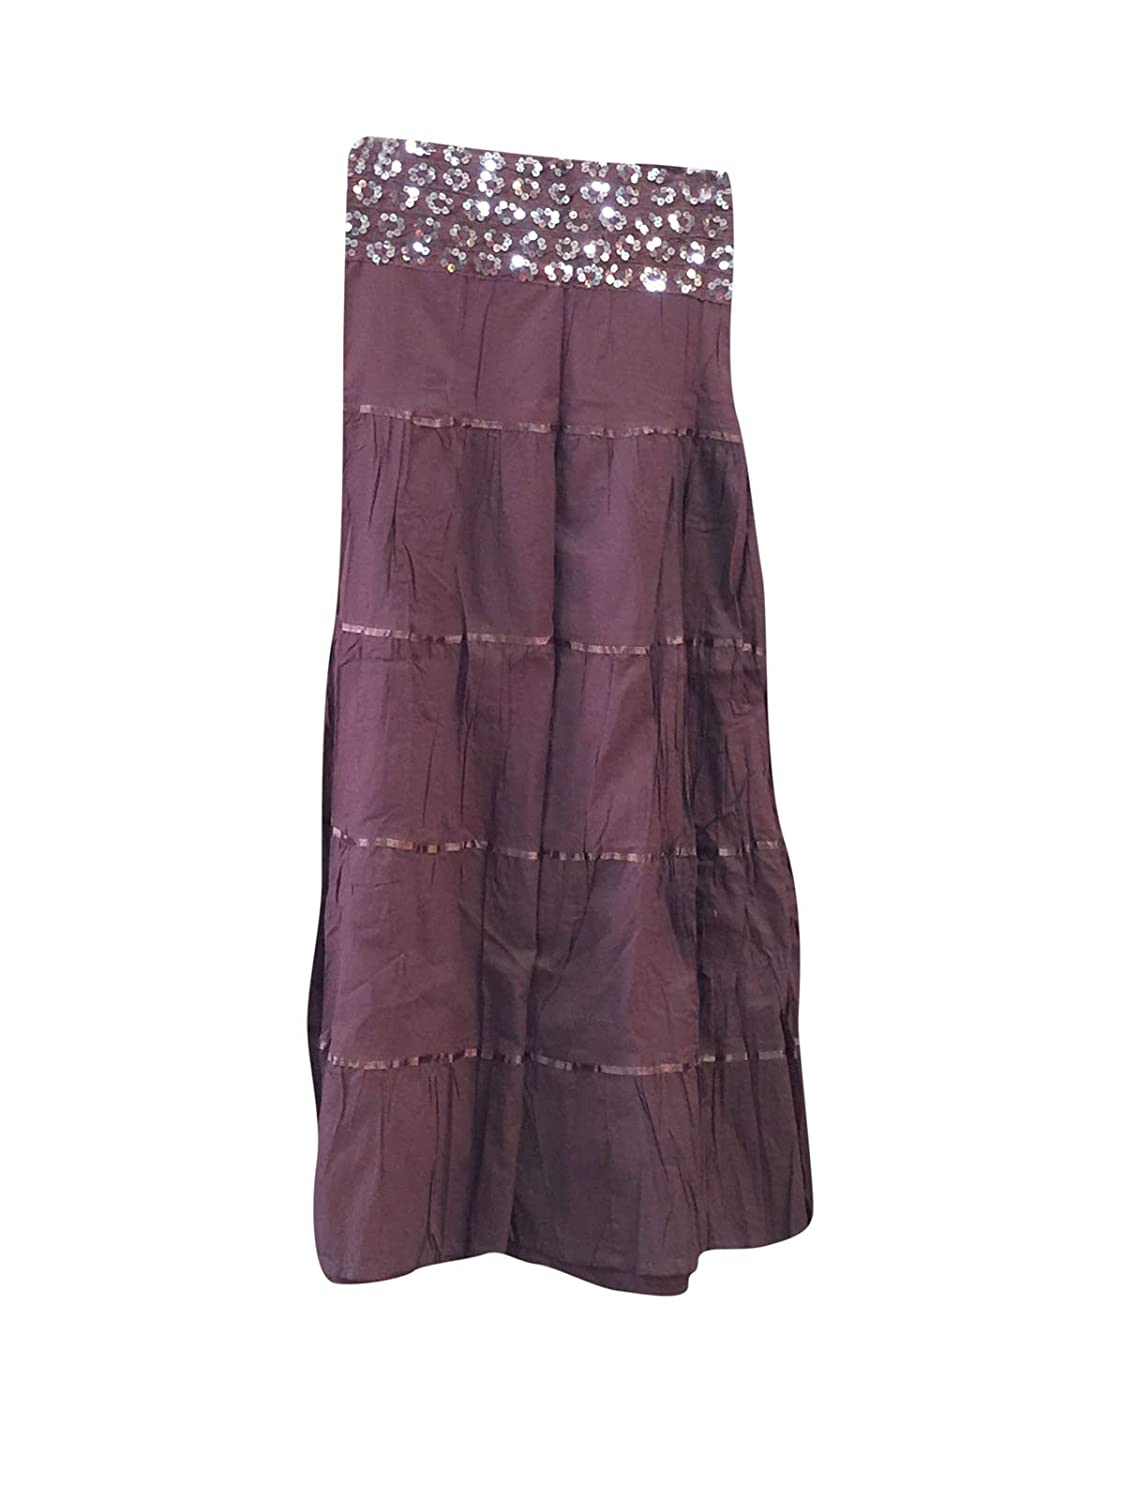 Mogul Interior Long Skirt Purple Sequin Boho Peasant Skirts. Gift For Her S